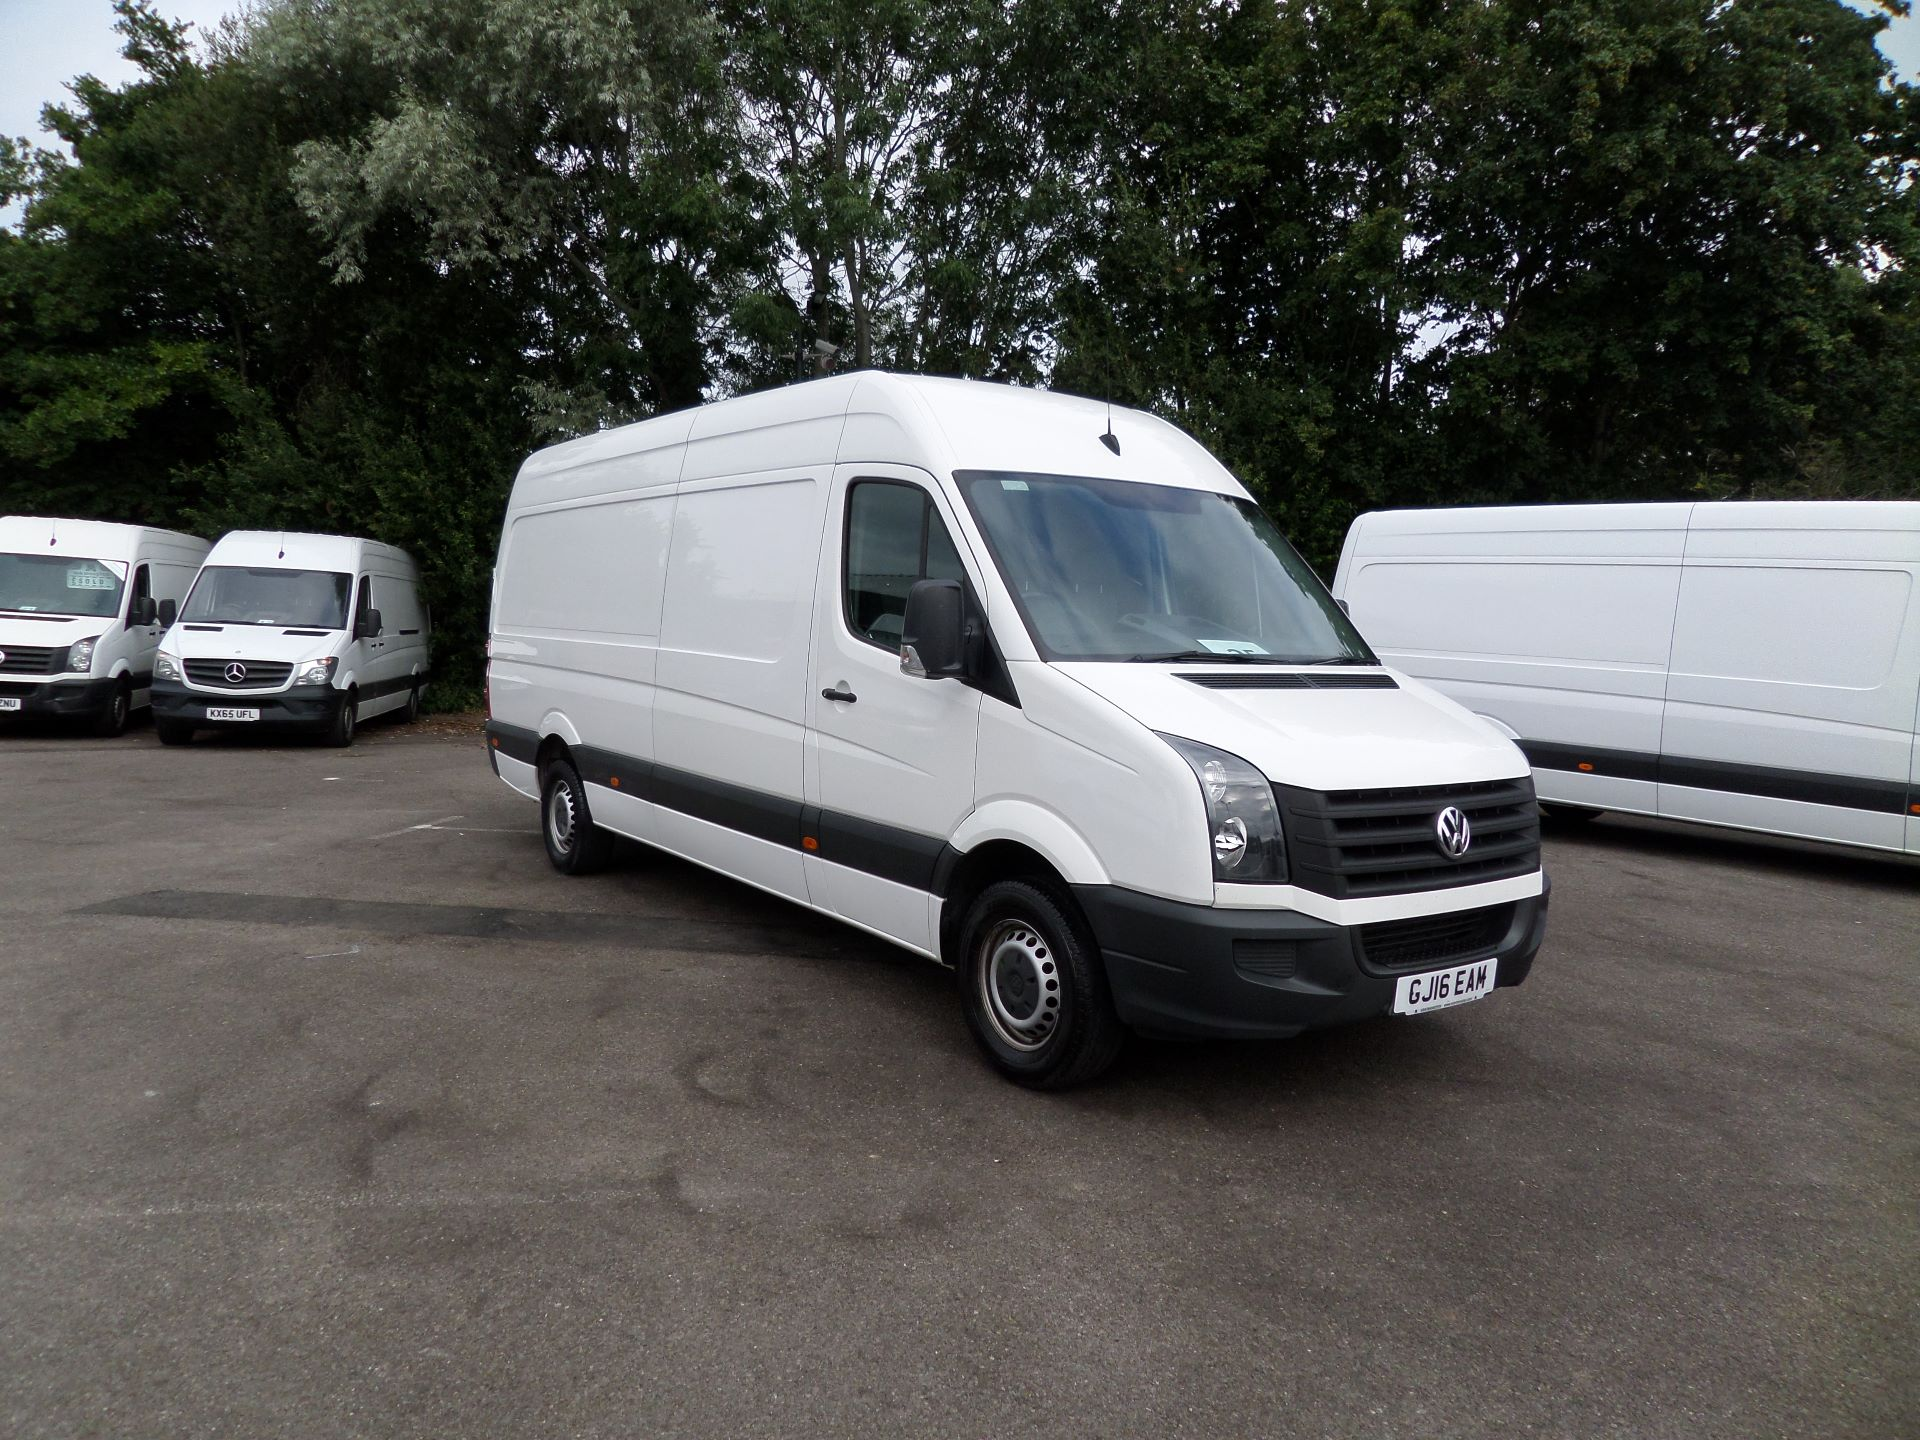 2016 Volkswagen Crafter CR35 LWB 2 0 TDI 136PS HIGH ROOF EURO 5